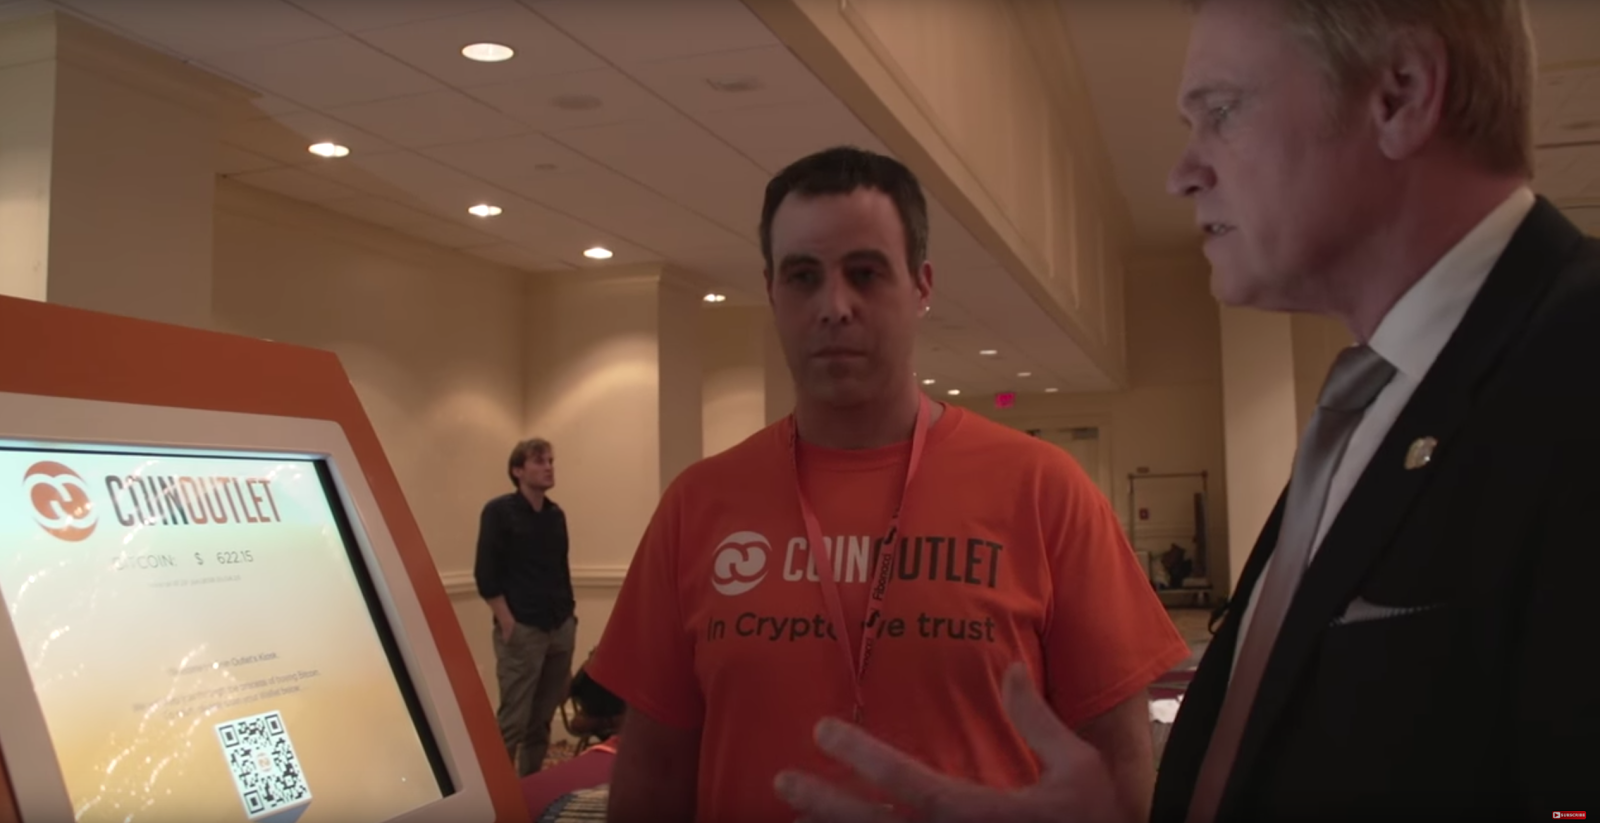 Mike Maloney deposits cash into a Bitcoin ATM created by CoinOutlet